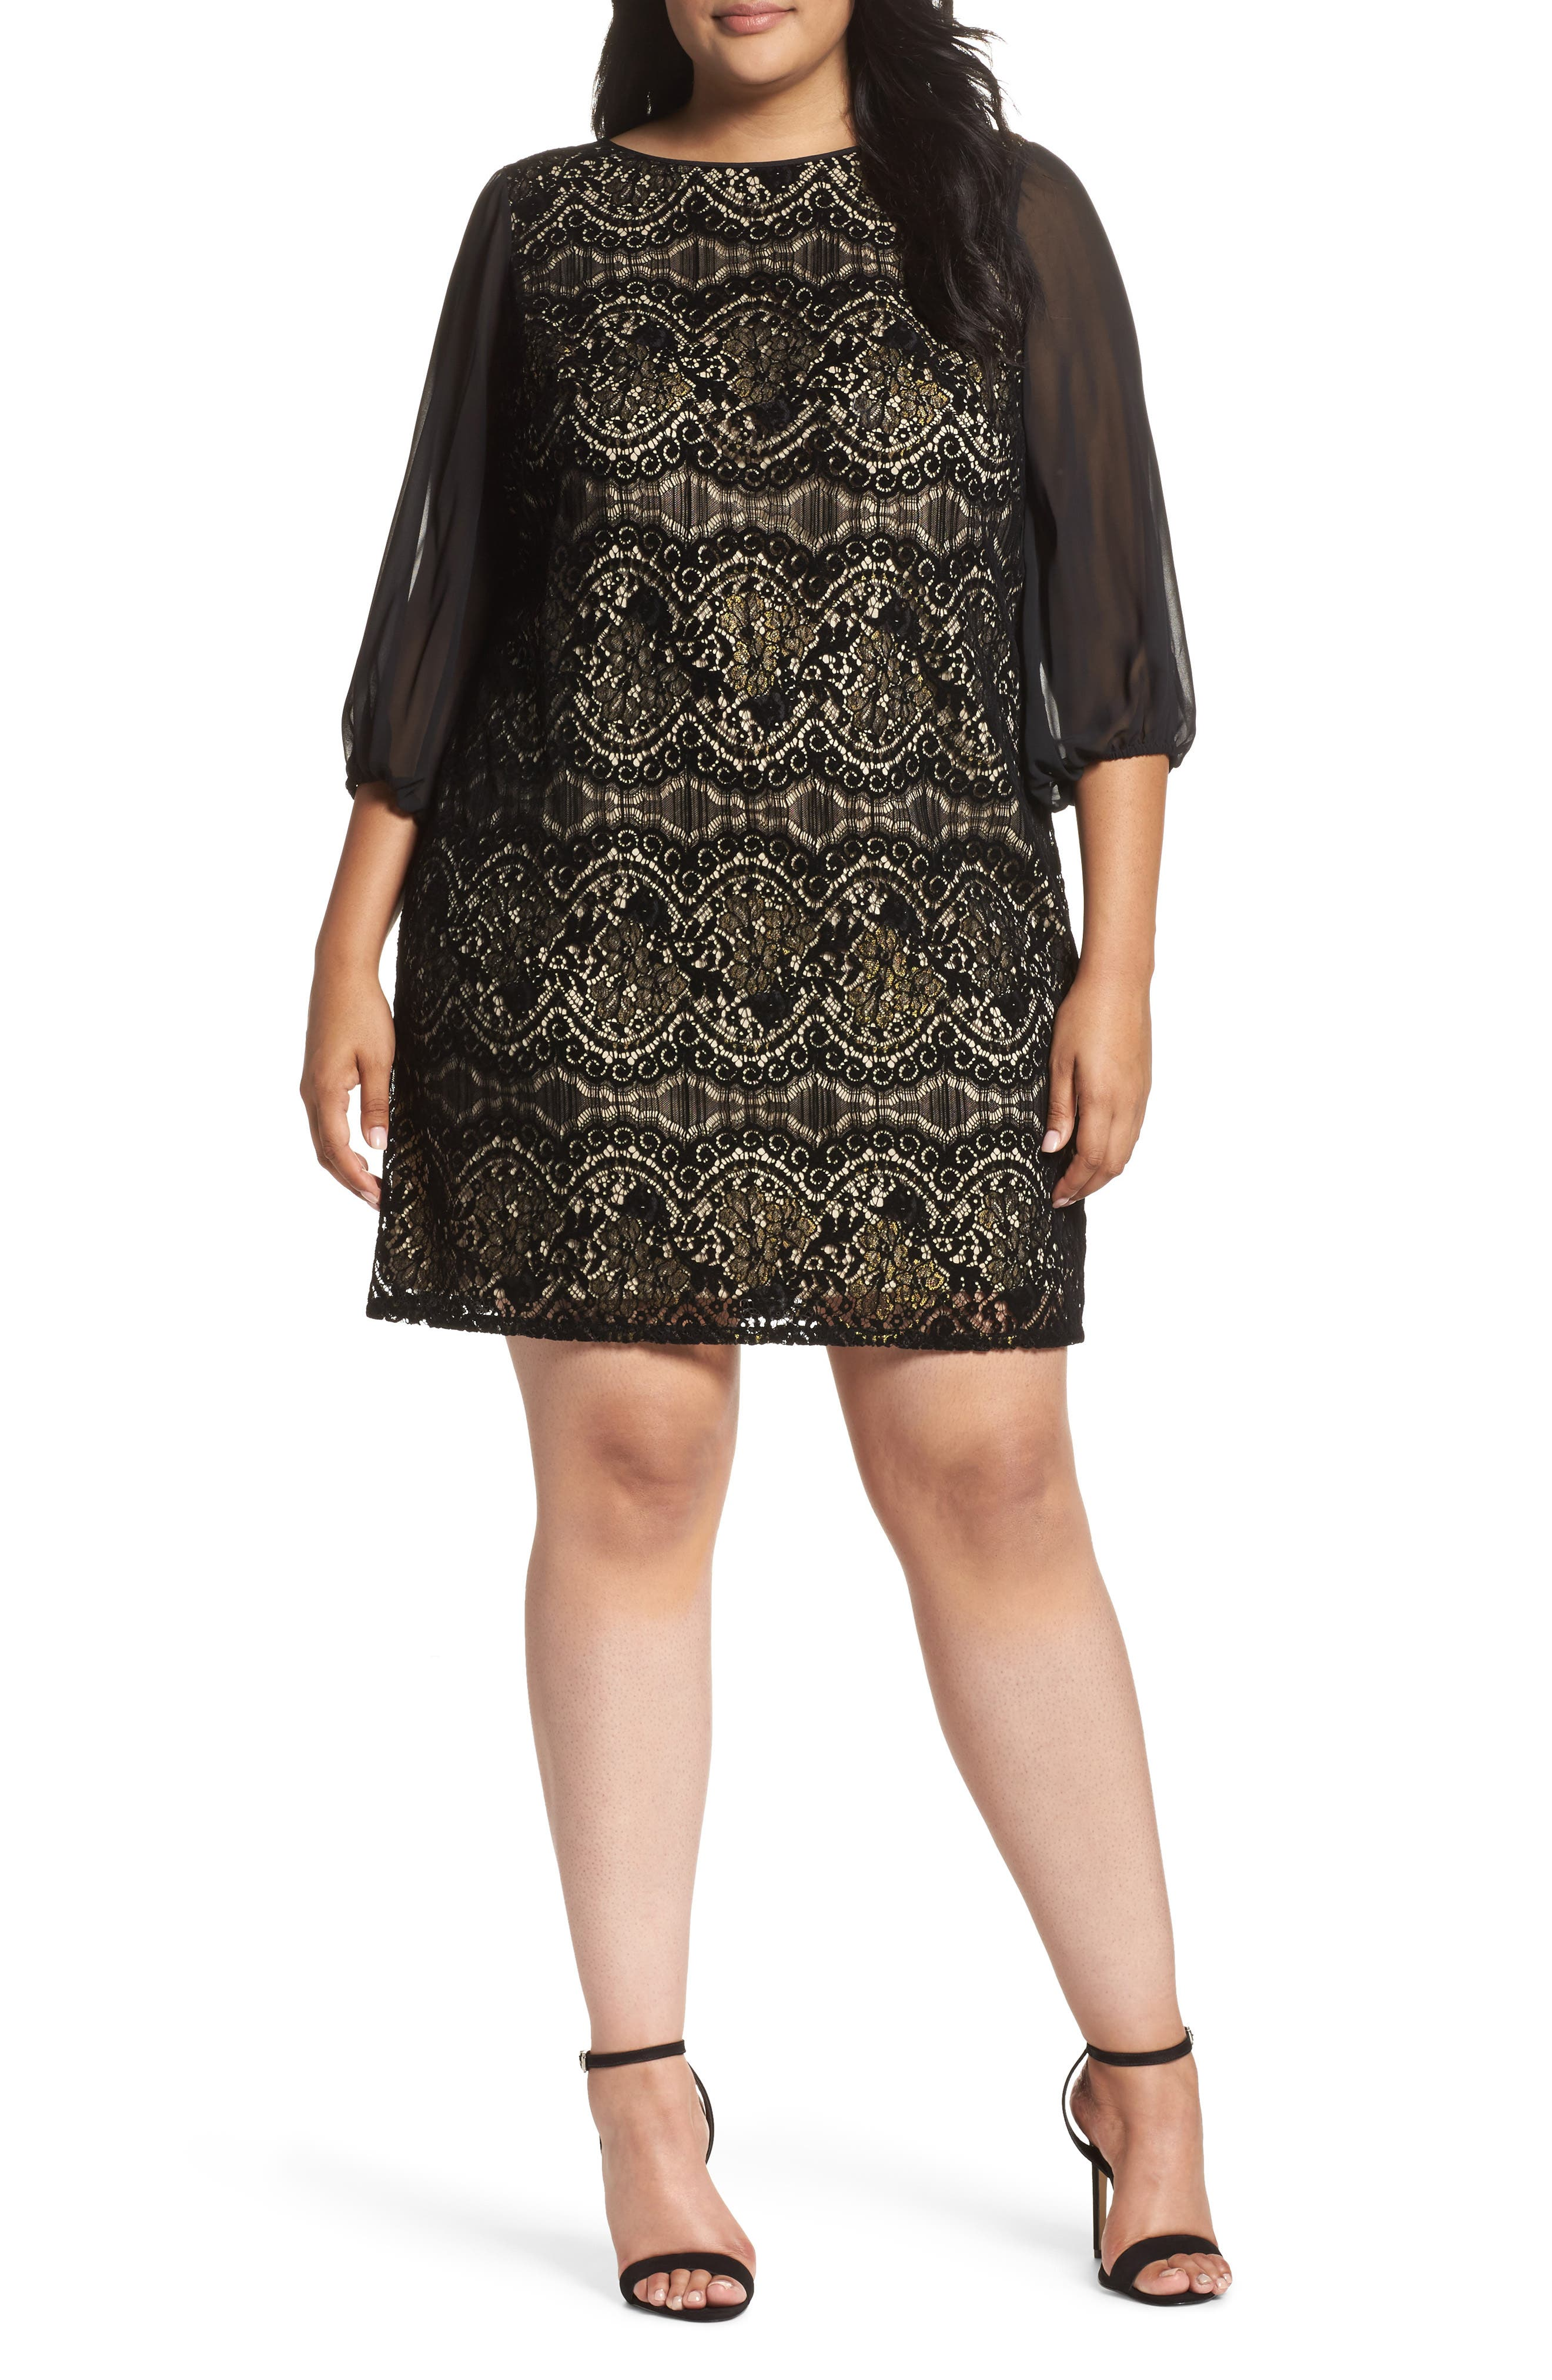 Adrianna Papell Flocked Lace Shift Dress (Plus Size)